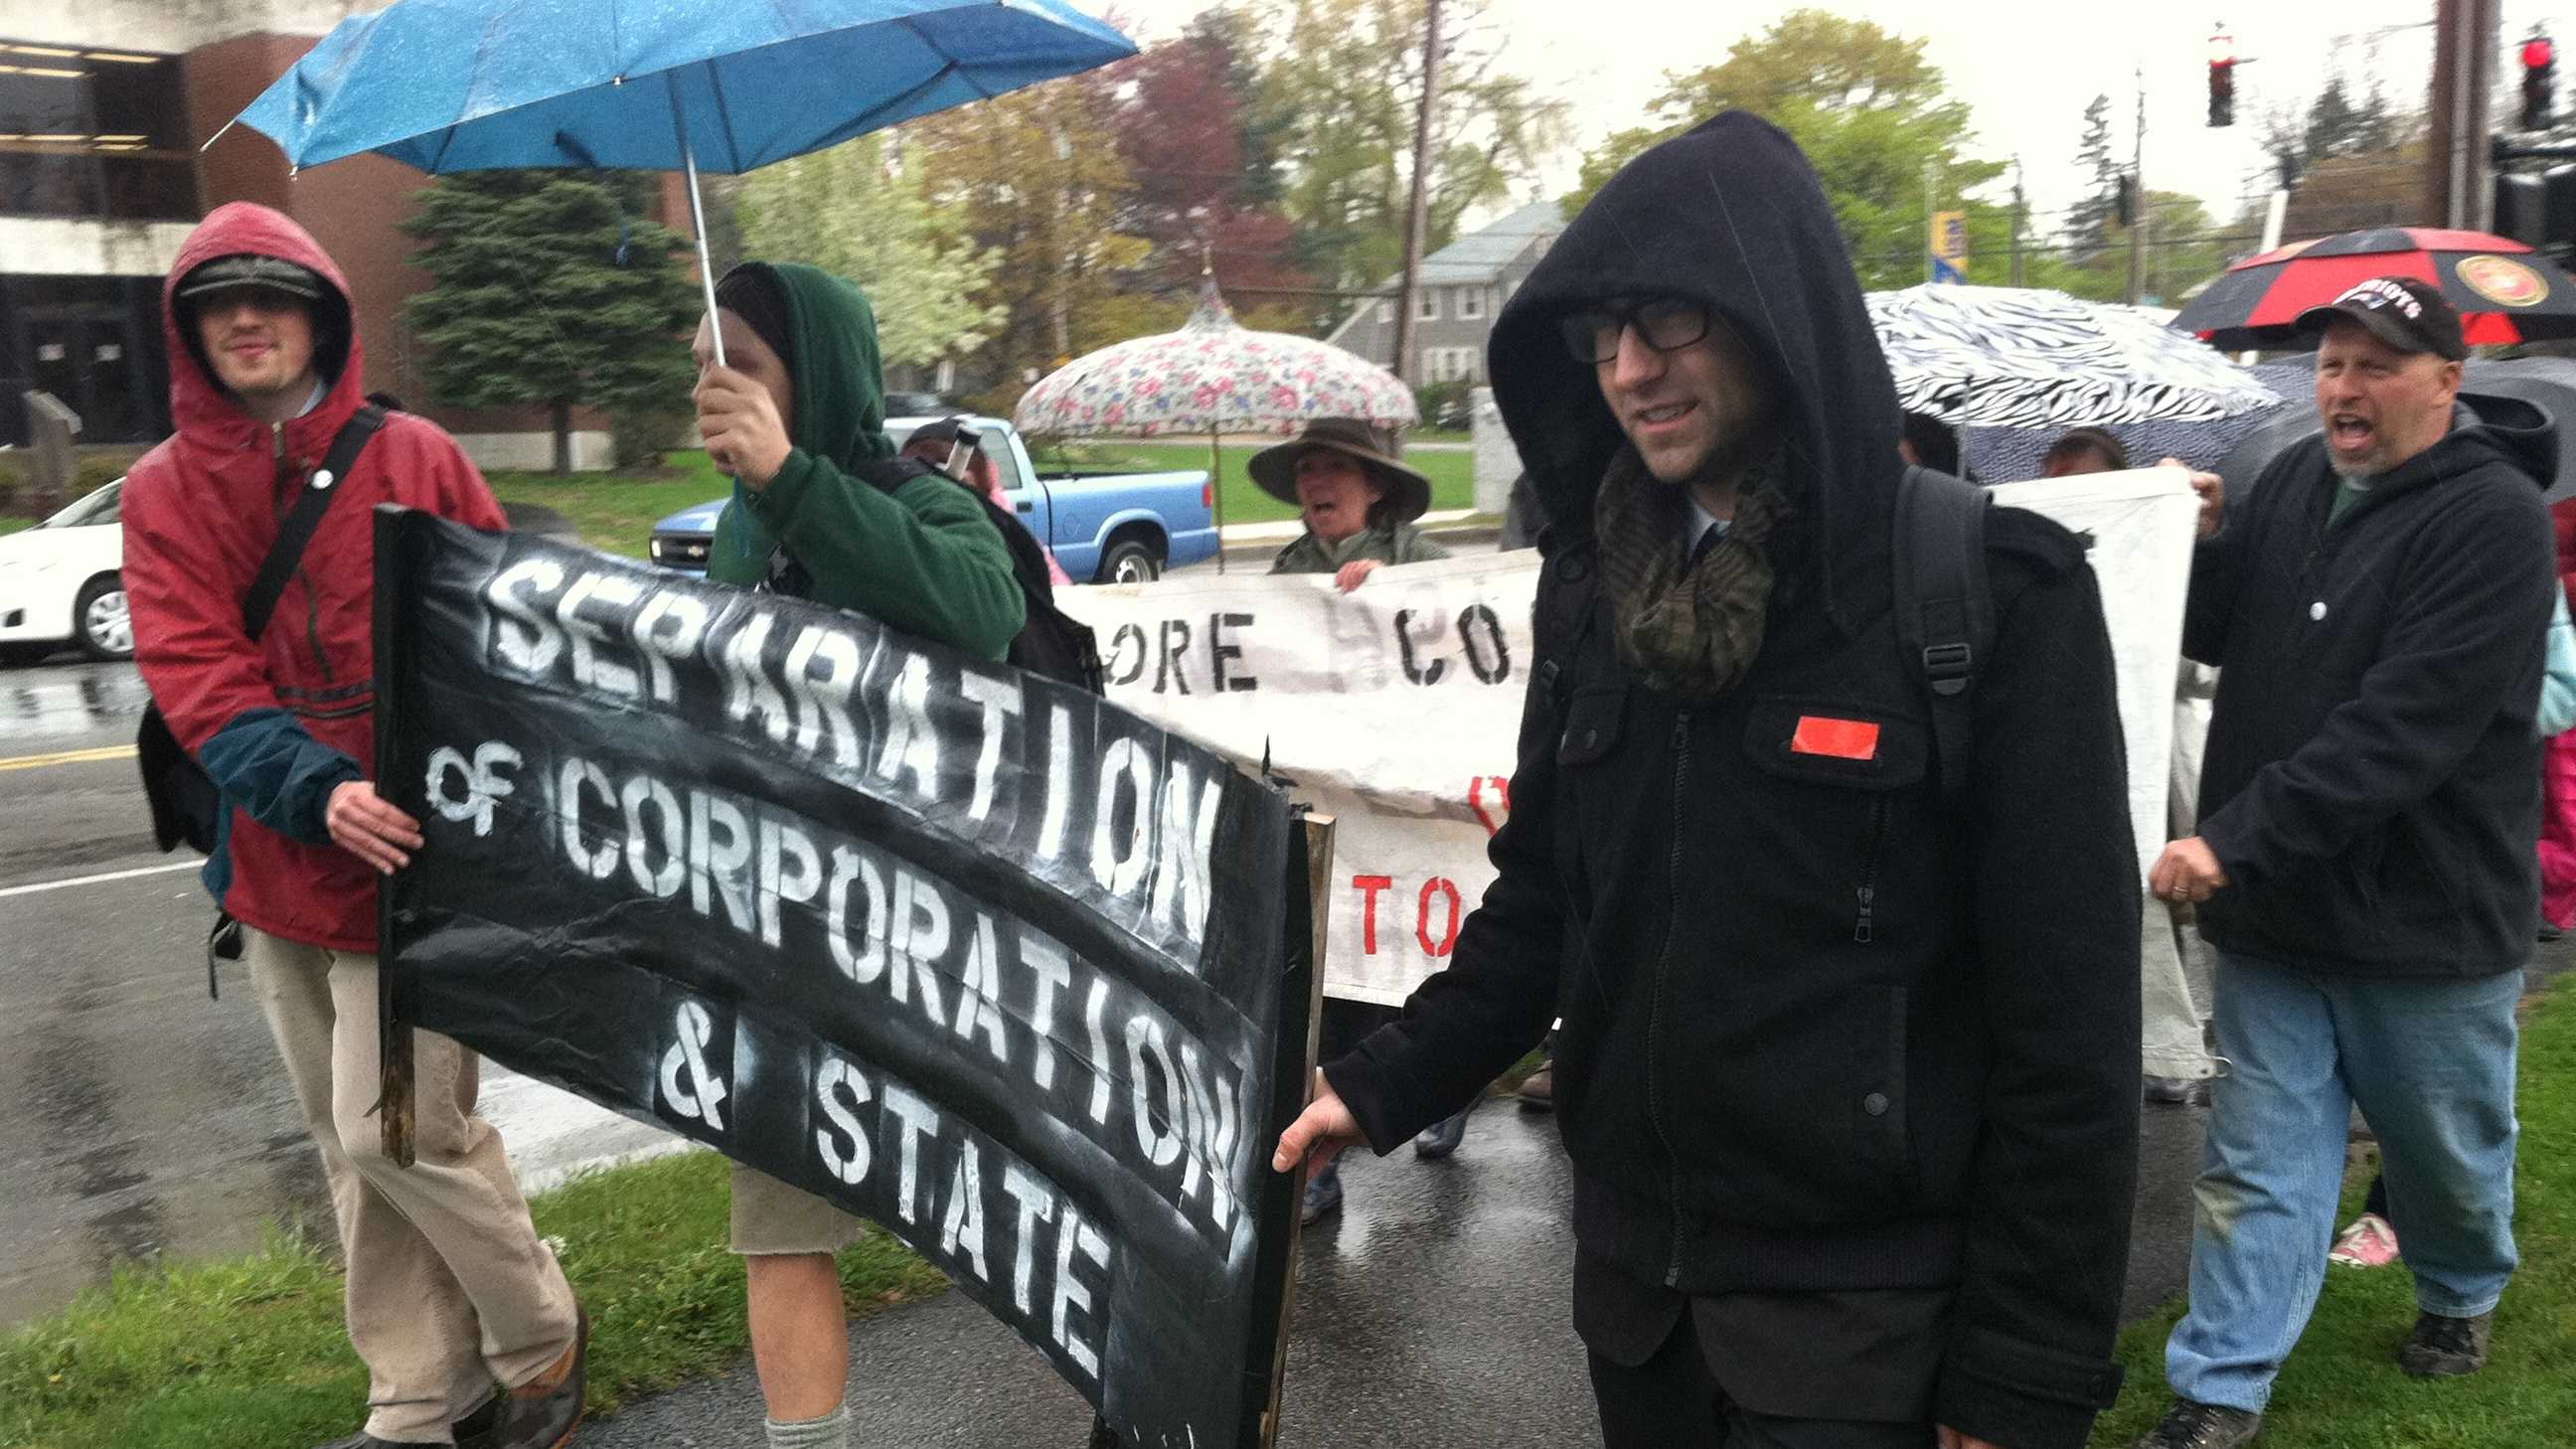 The students joined members of OccupyMaine for a rally in Congress Square.